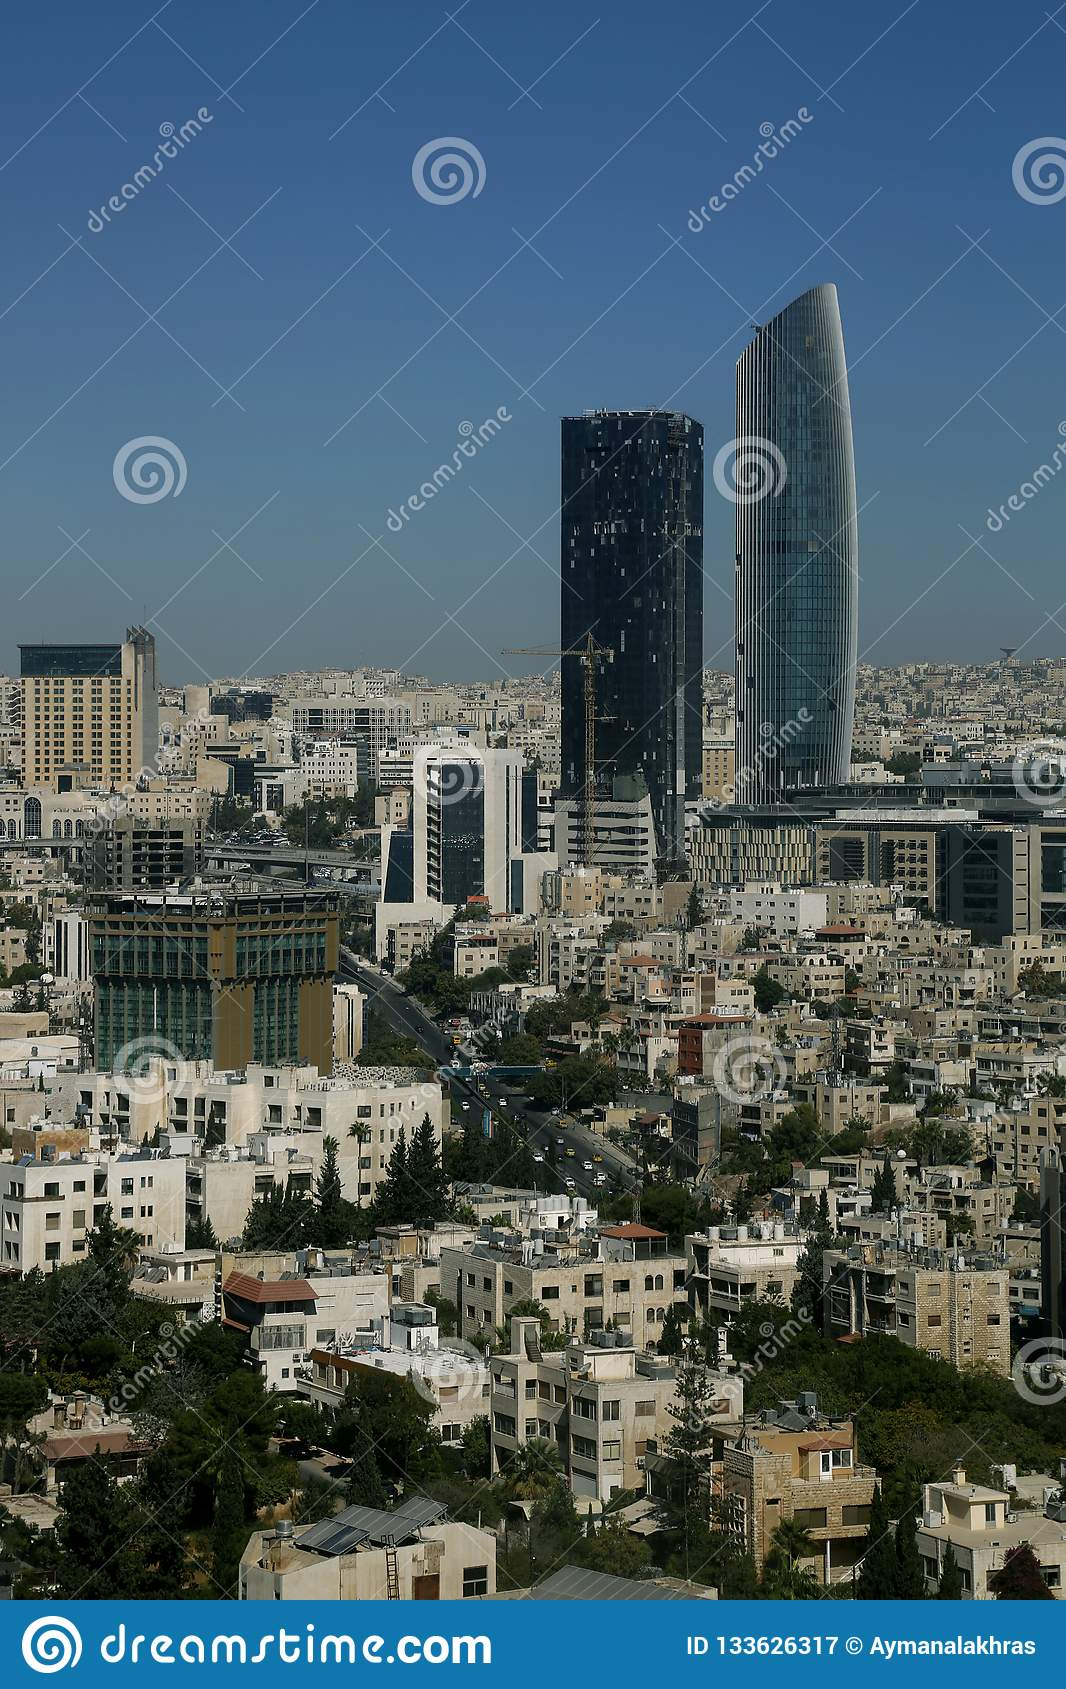 The New Downtown Of Amman City Abdali Area